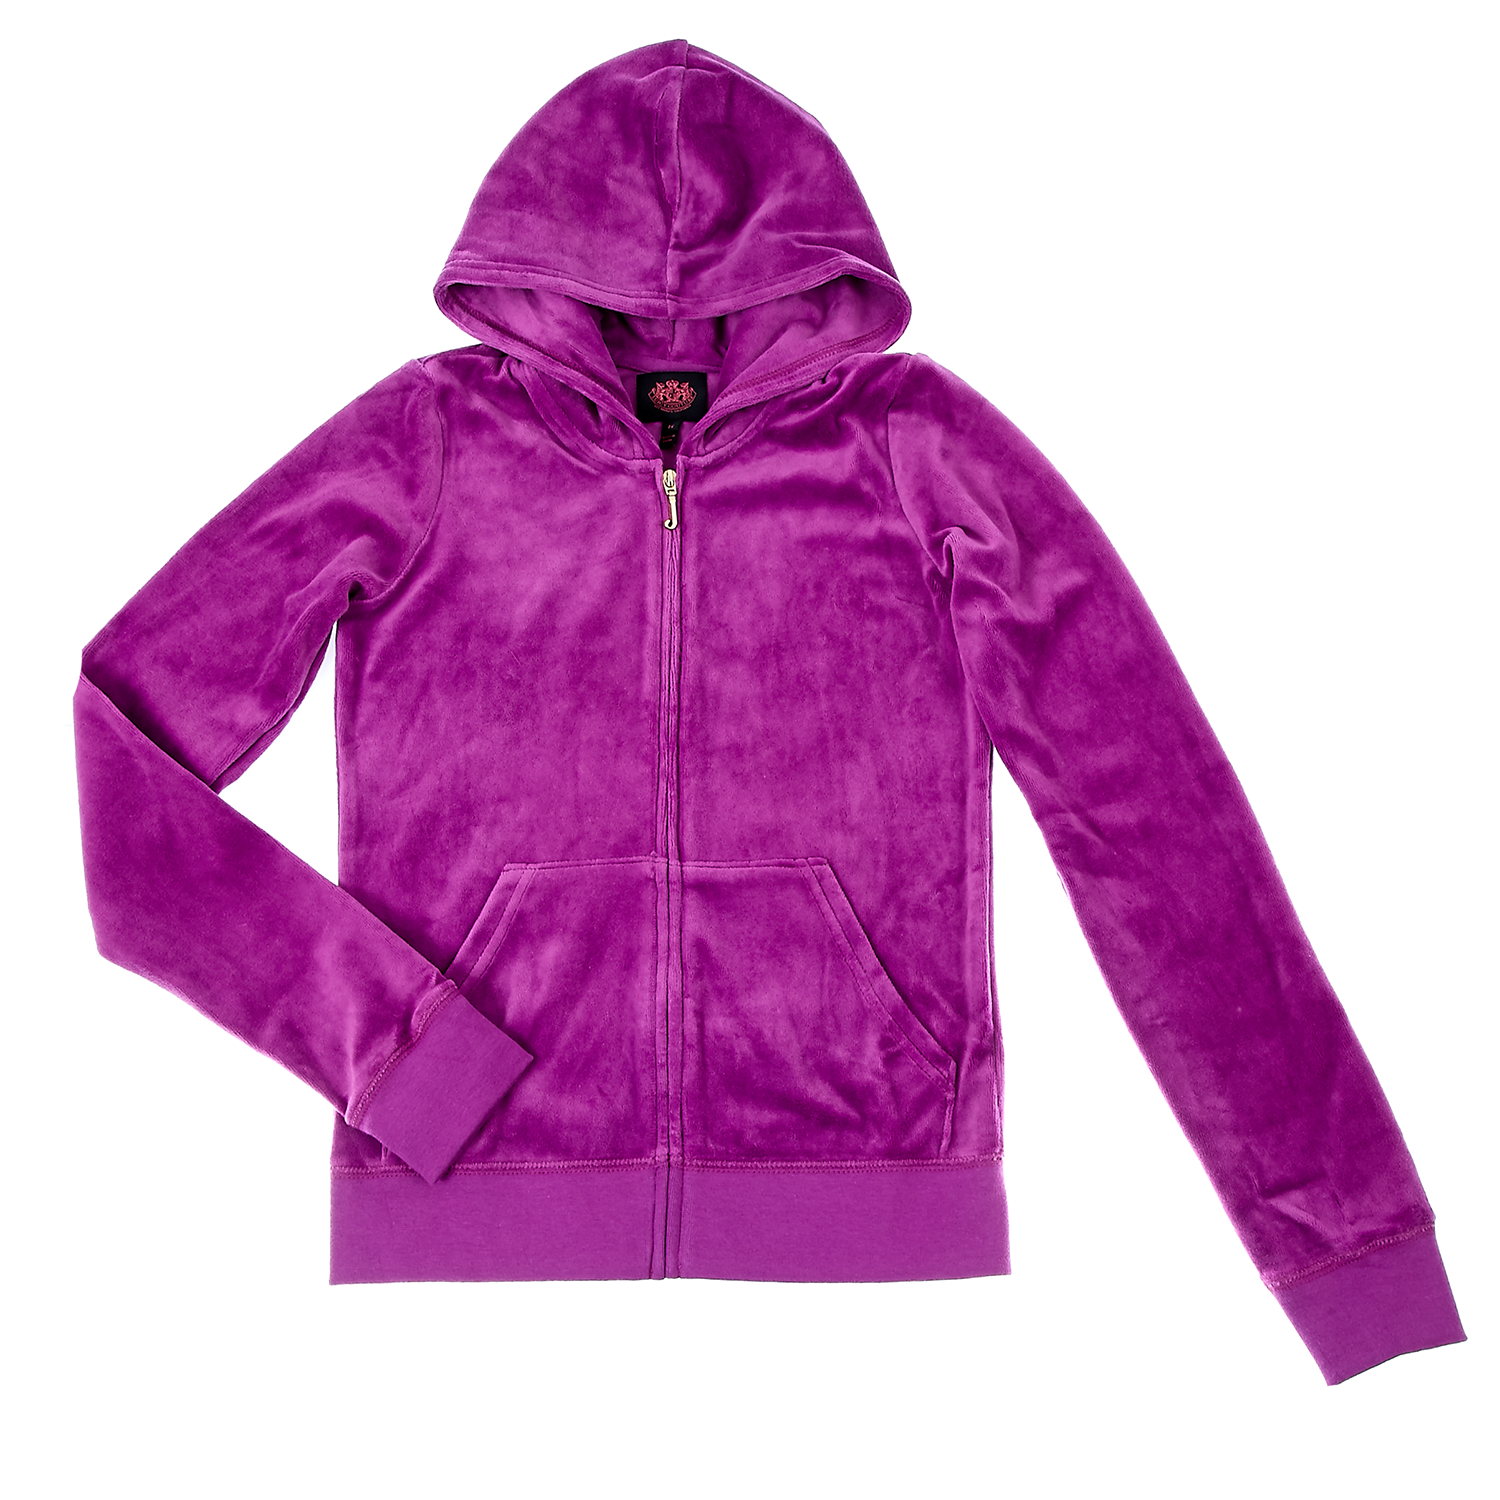 JUICY COUTURE KIDS - Παιδική ζακέτα Juicy Couture μωβ